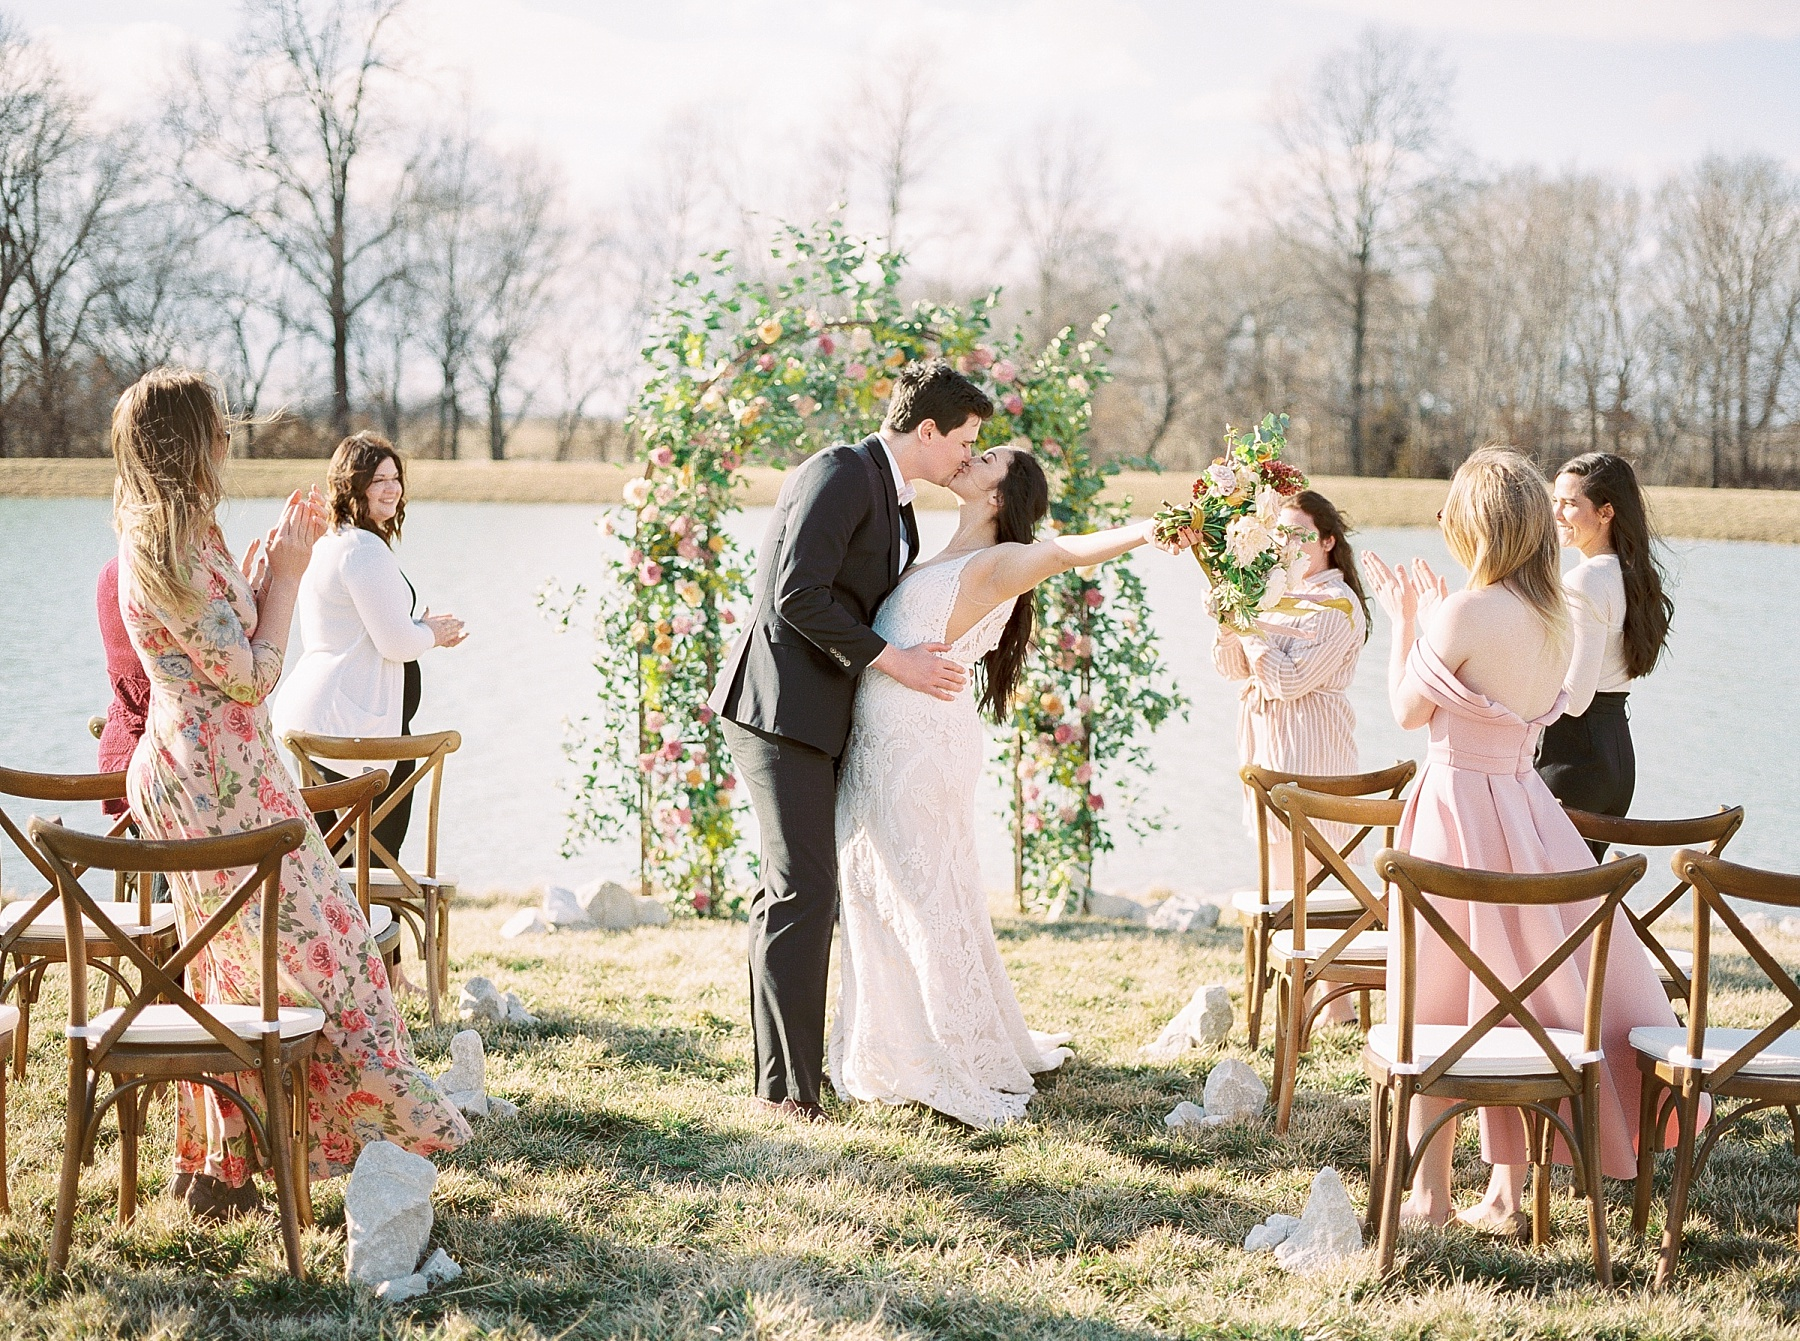 Intimate Lakeside Elopement at Emerson Fields All White Wedding Venue by Kelsi Kliethermes Photography Best Missouri and Maui Wedding Photographer_0020.jpg